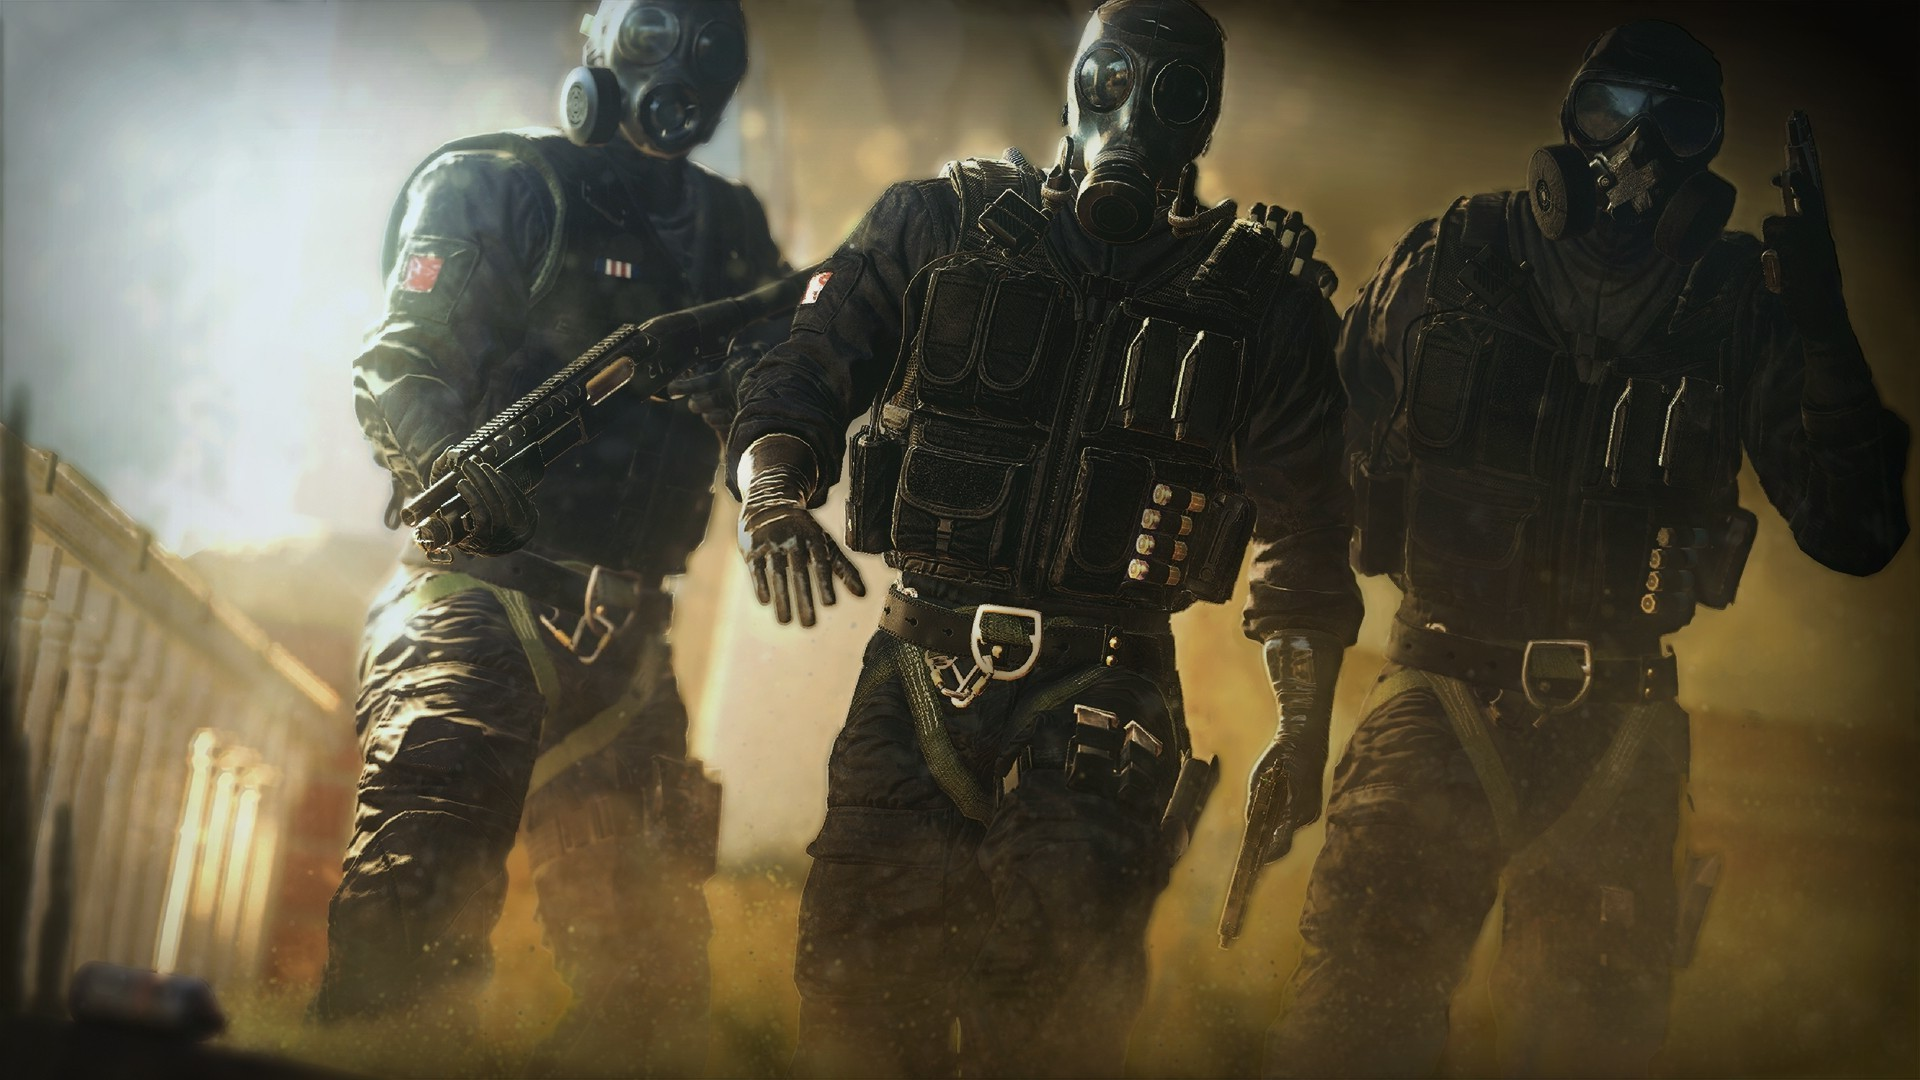 Rainbow Six Rainbow Six Siege Rainbow Six Video Games Wallpapers Hd